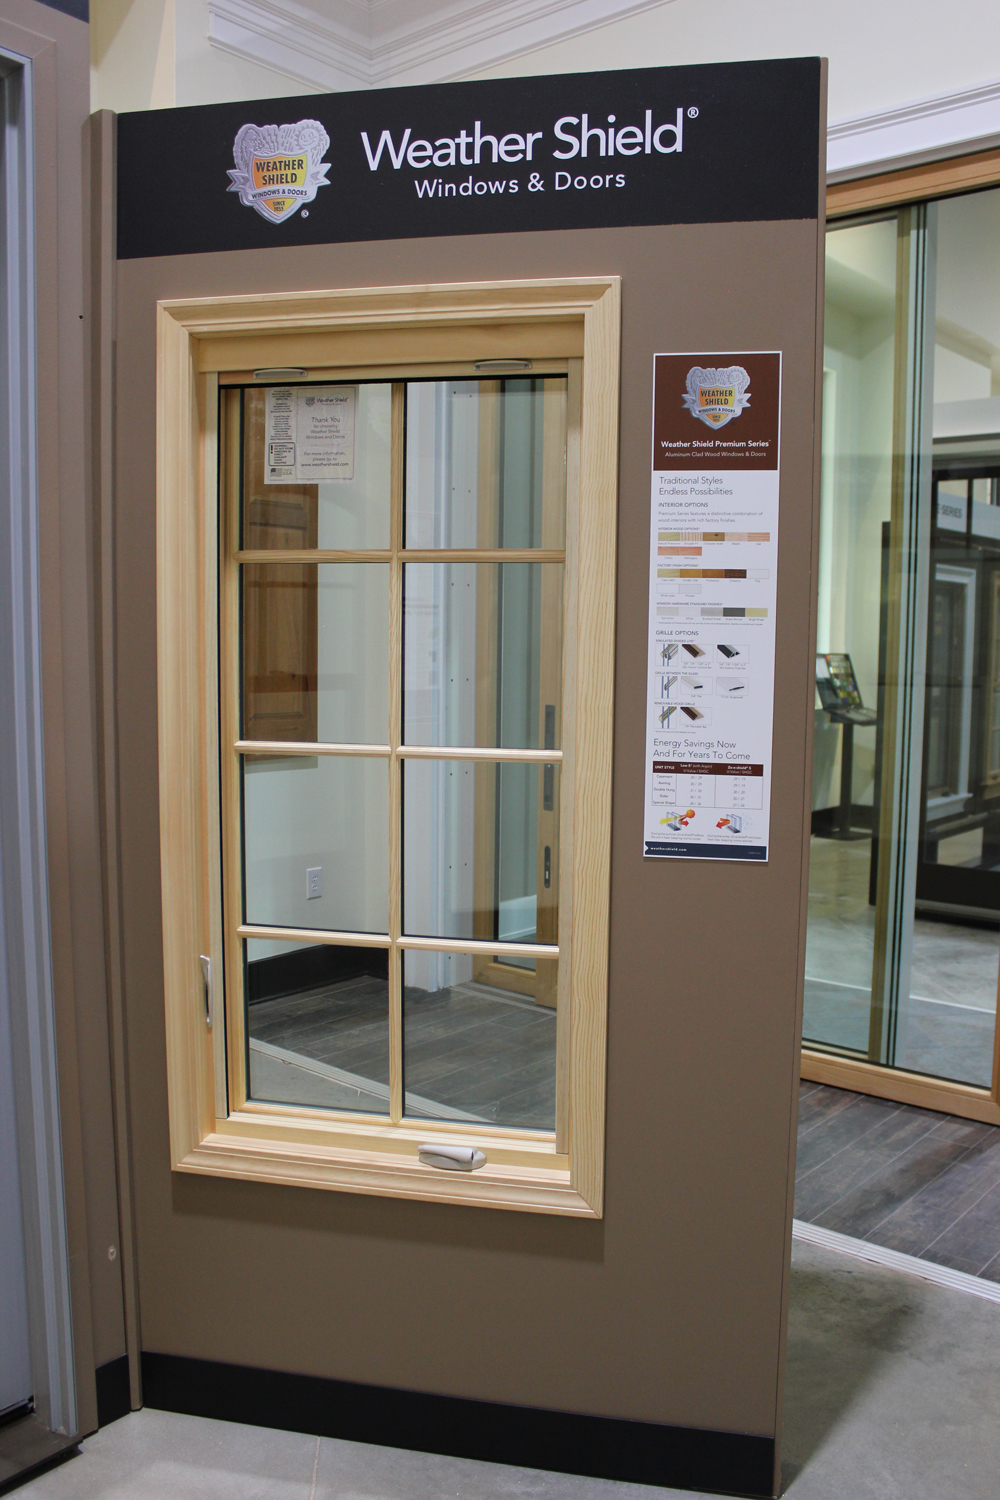 Wood Clad Windows : Wood clad windows ford lumber millwork company inc